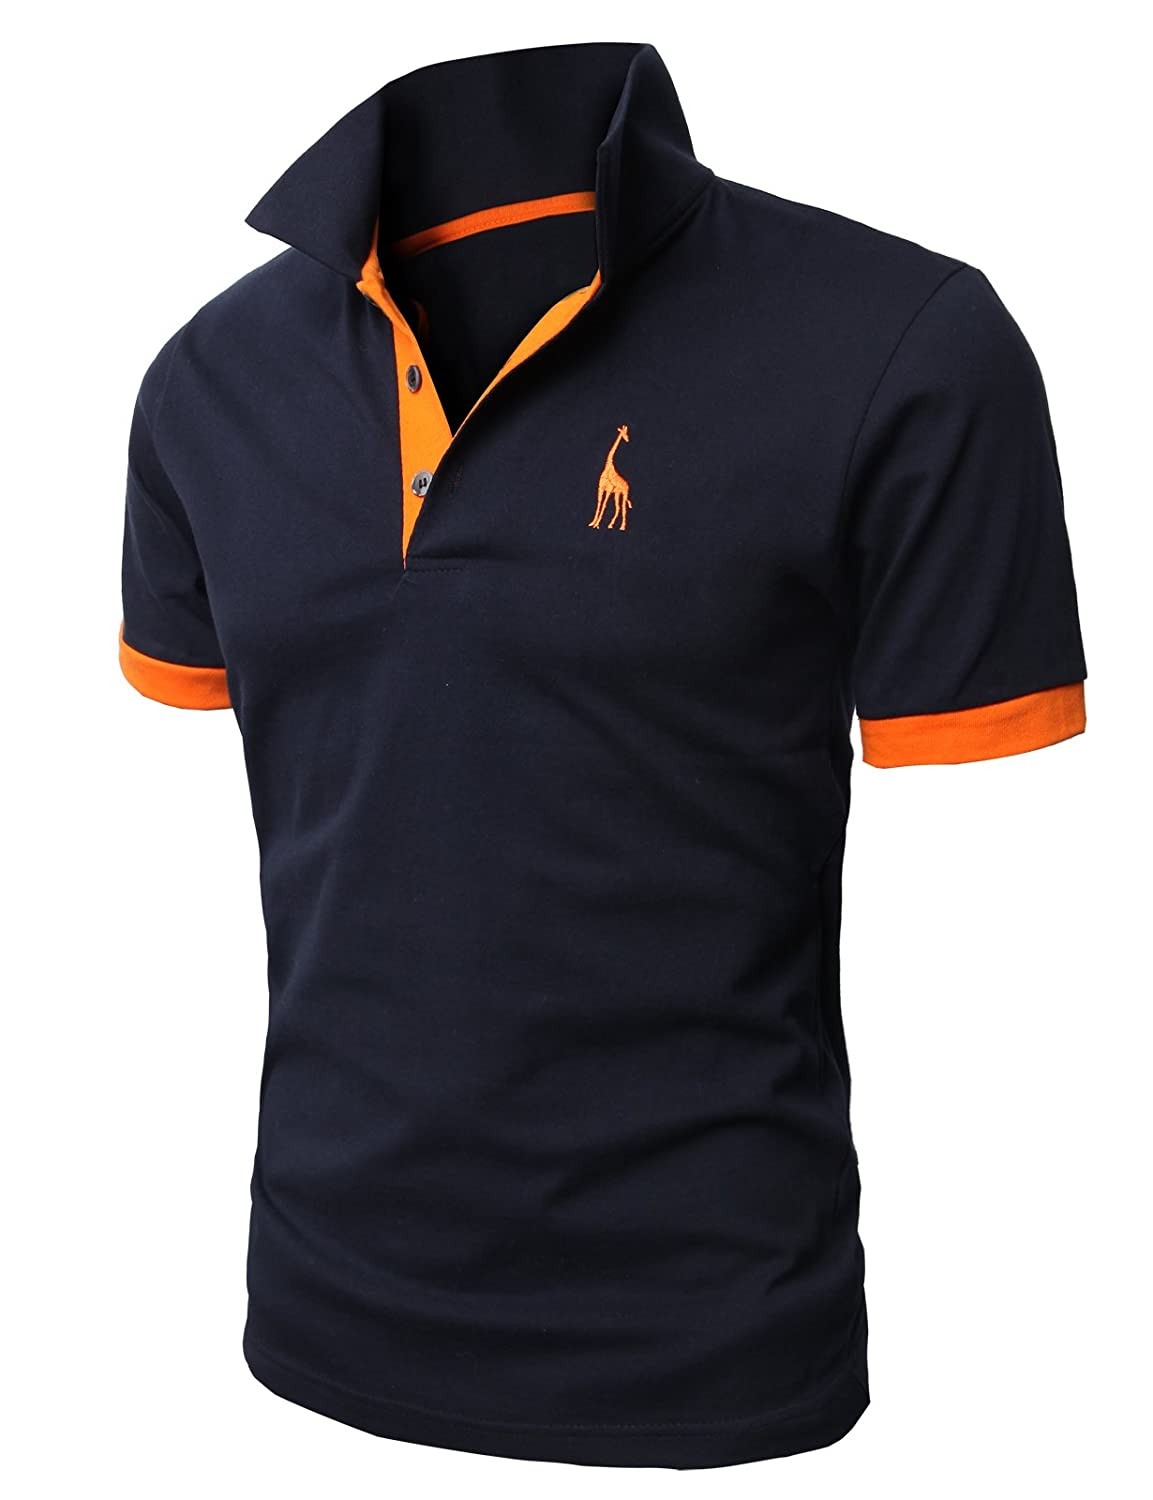 08e5b37796f627 H2H Mens Casual Slim Fit Polo T-Shirts Basic Designed with Giraffe  Embroidery at Amazon Men s Clothing store